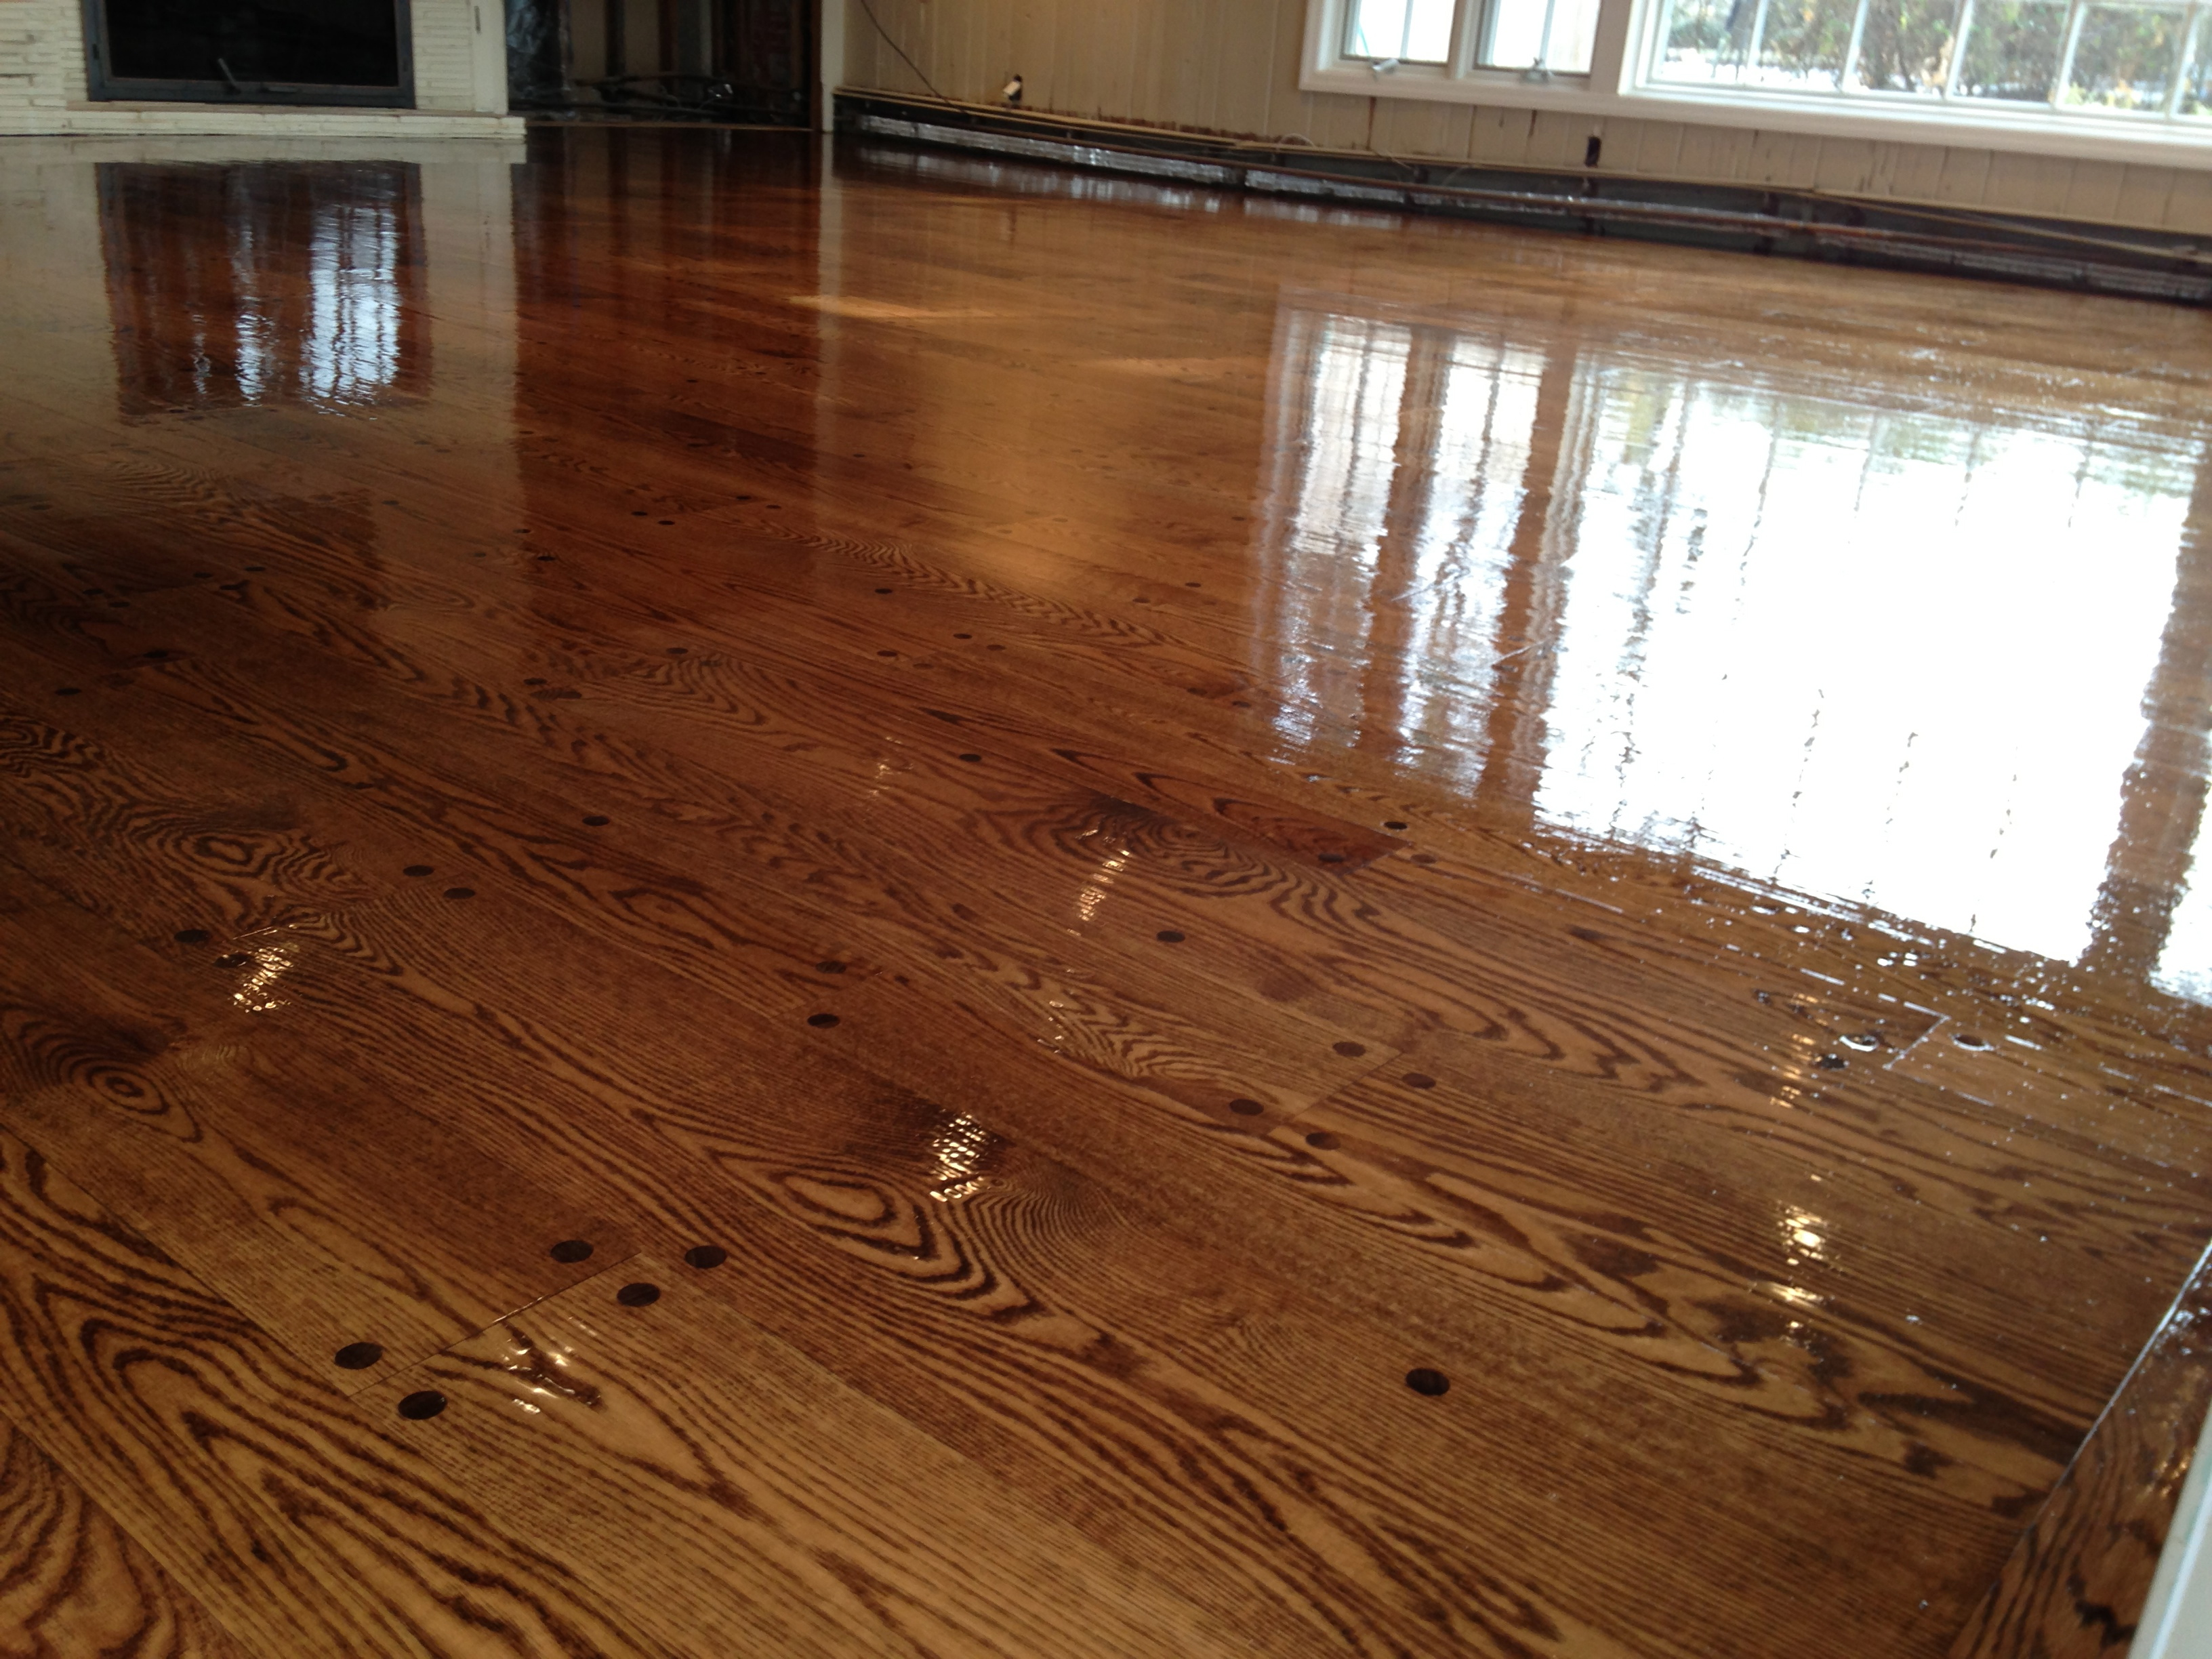 Brand new old floors :)